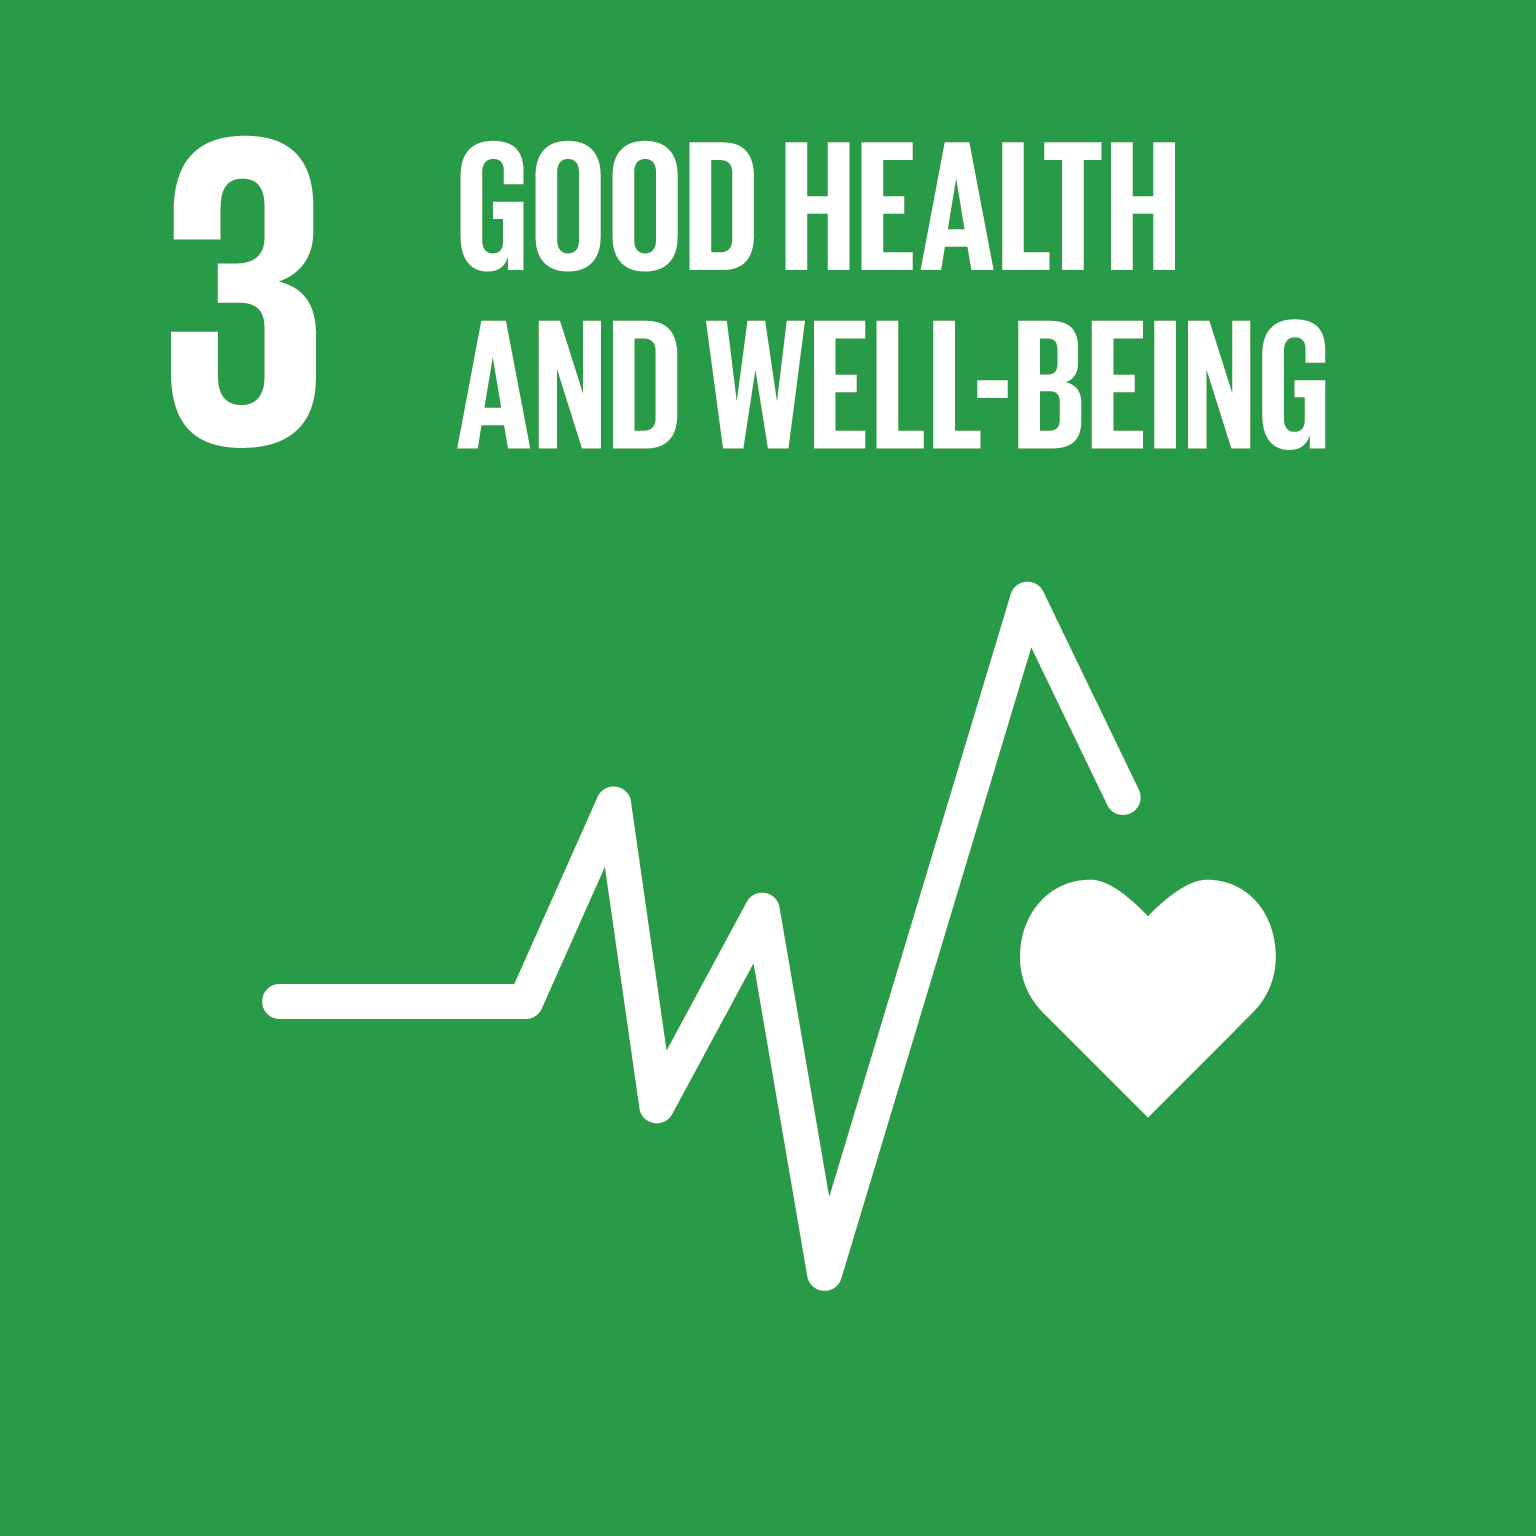 Goal 3: Good Health And Well-Being, the text of this infographic is listed below